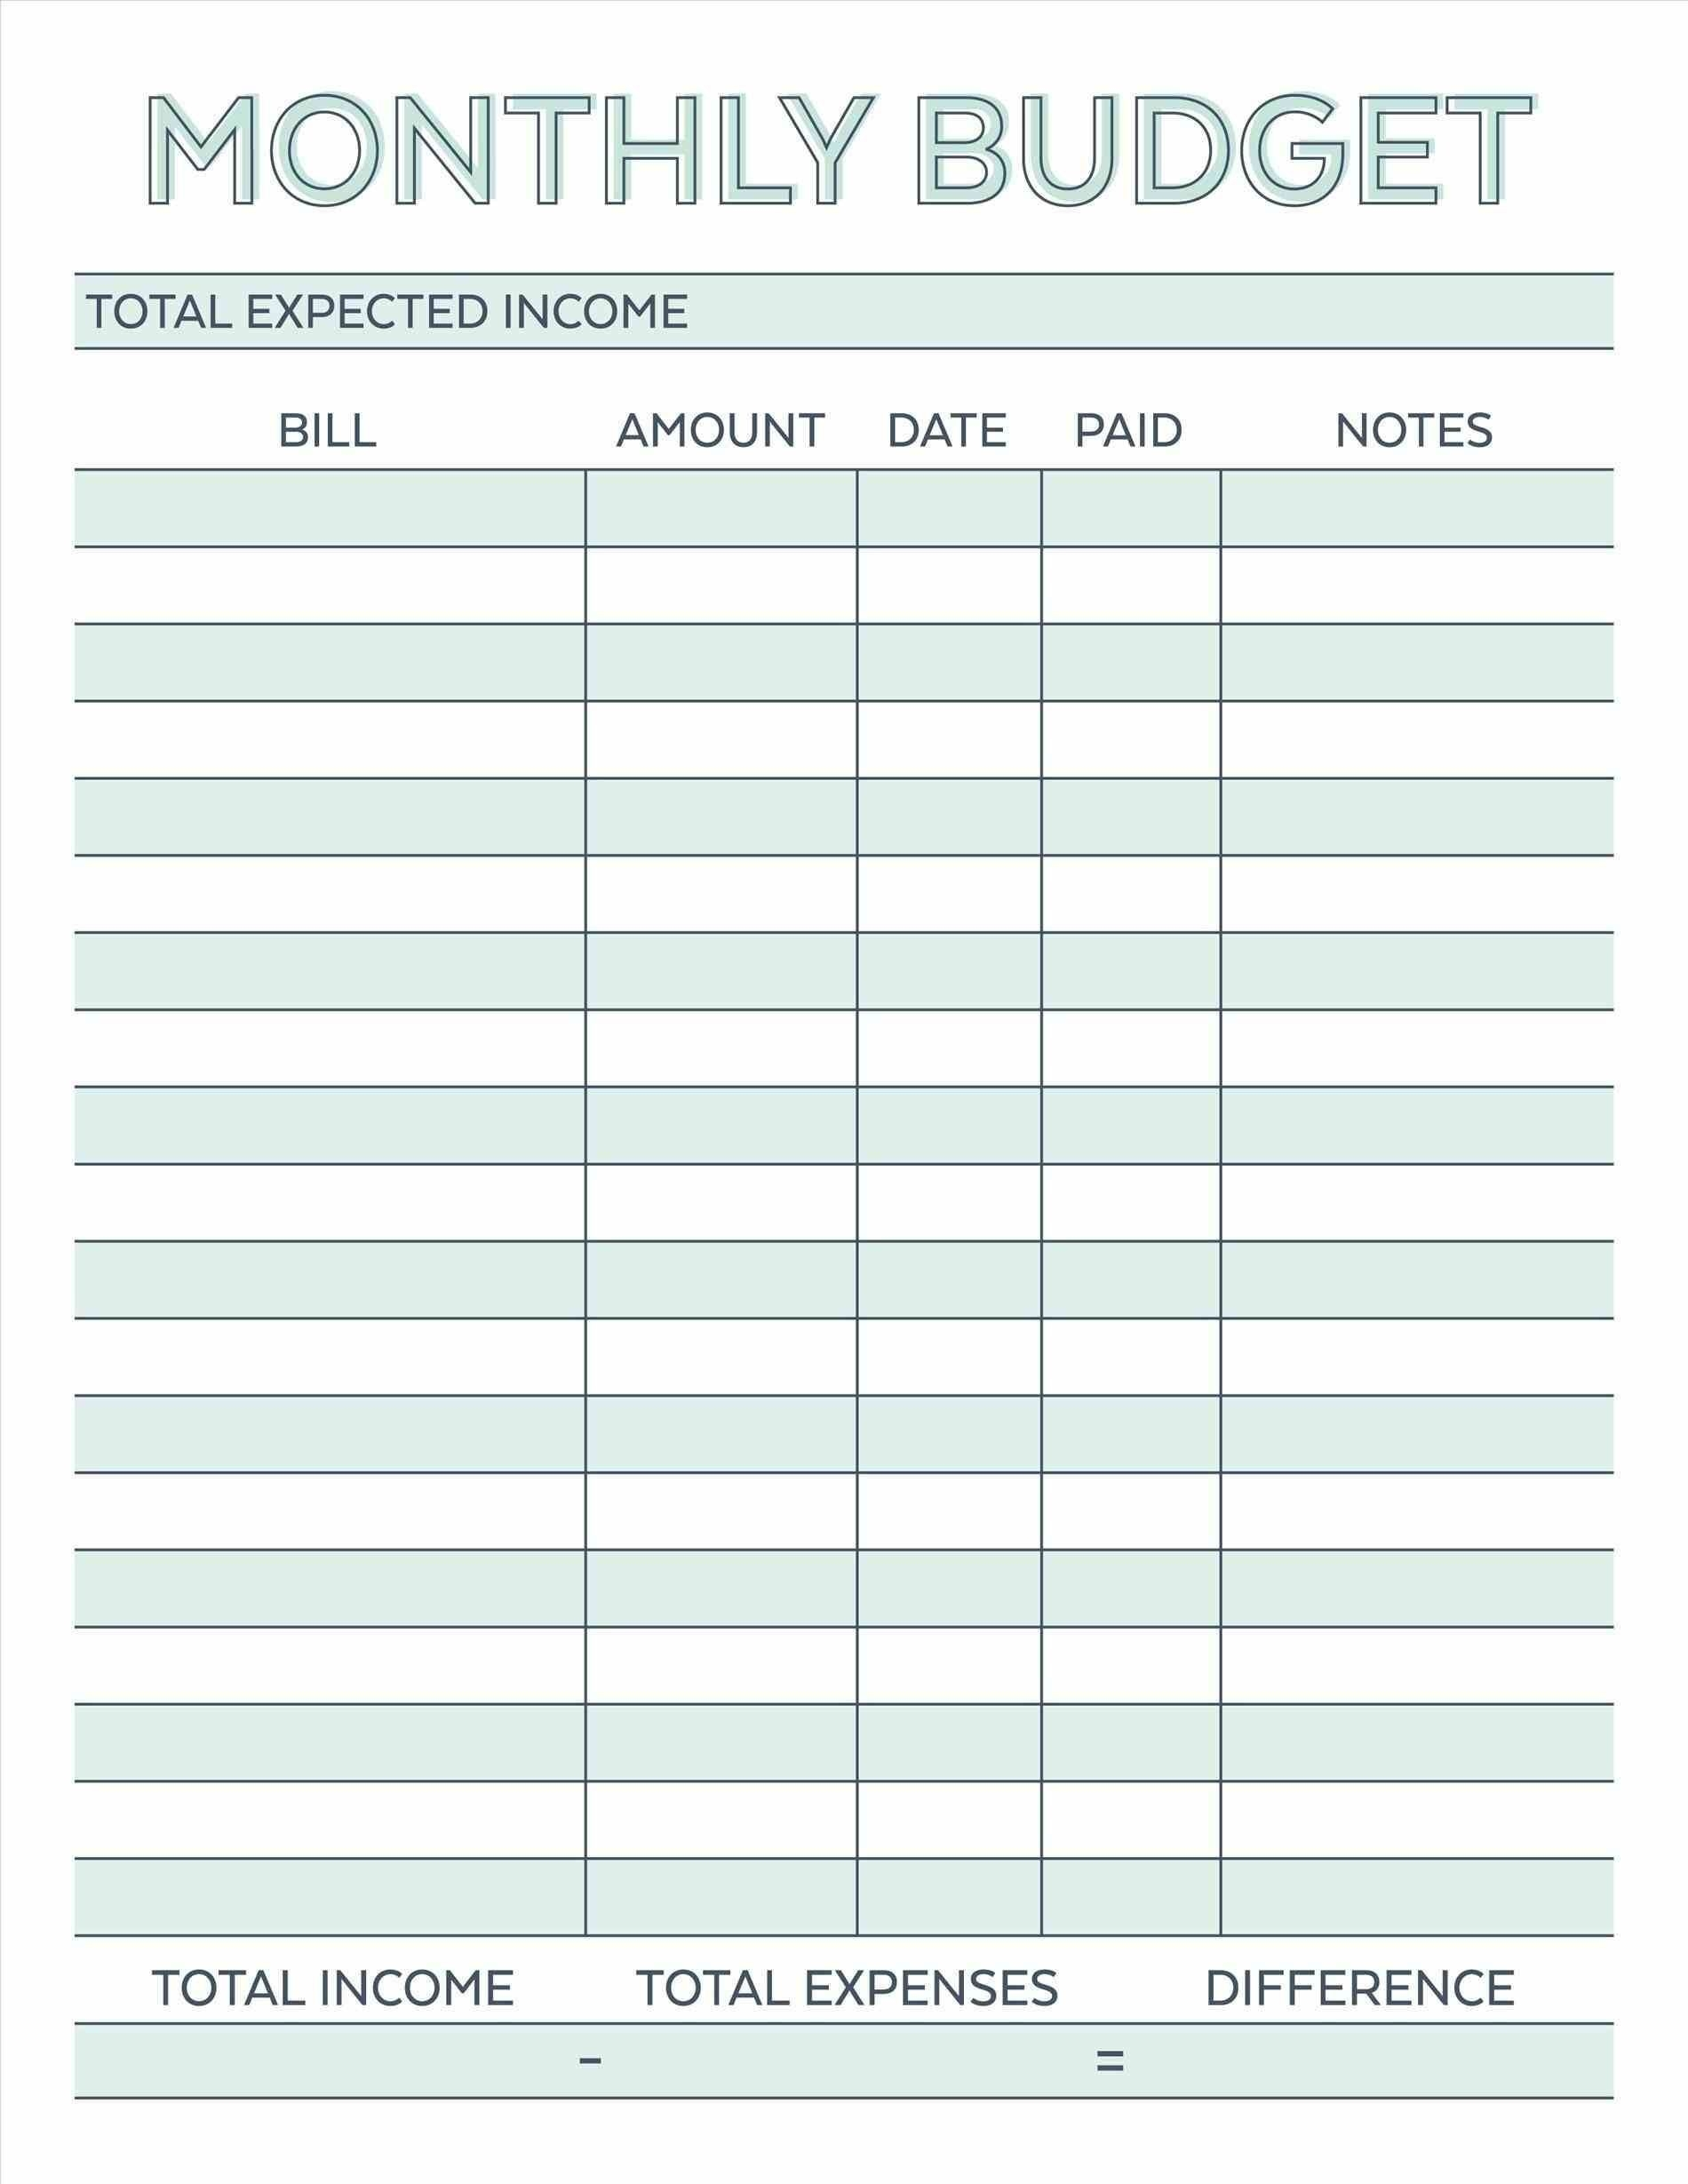 Budget Planner Planner Worksheet Monthly Bills Template Free-Blank Chart For Monthly Bills